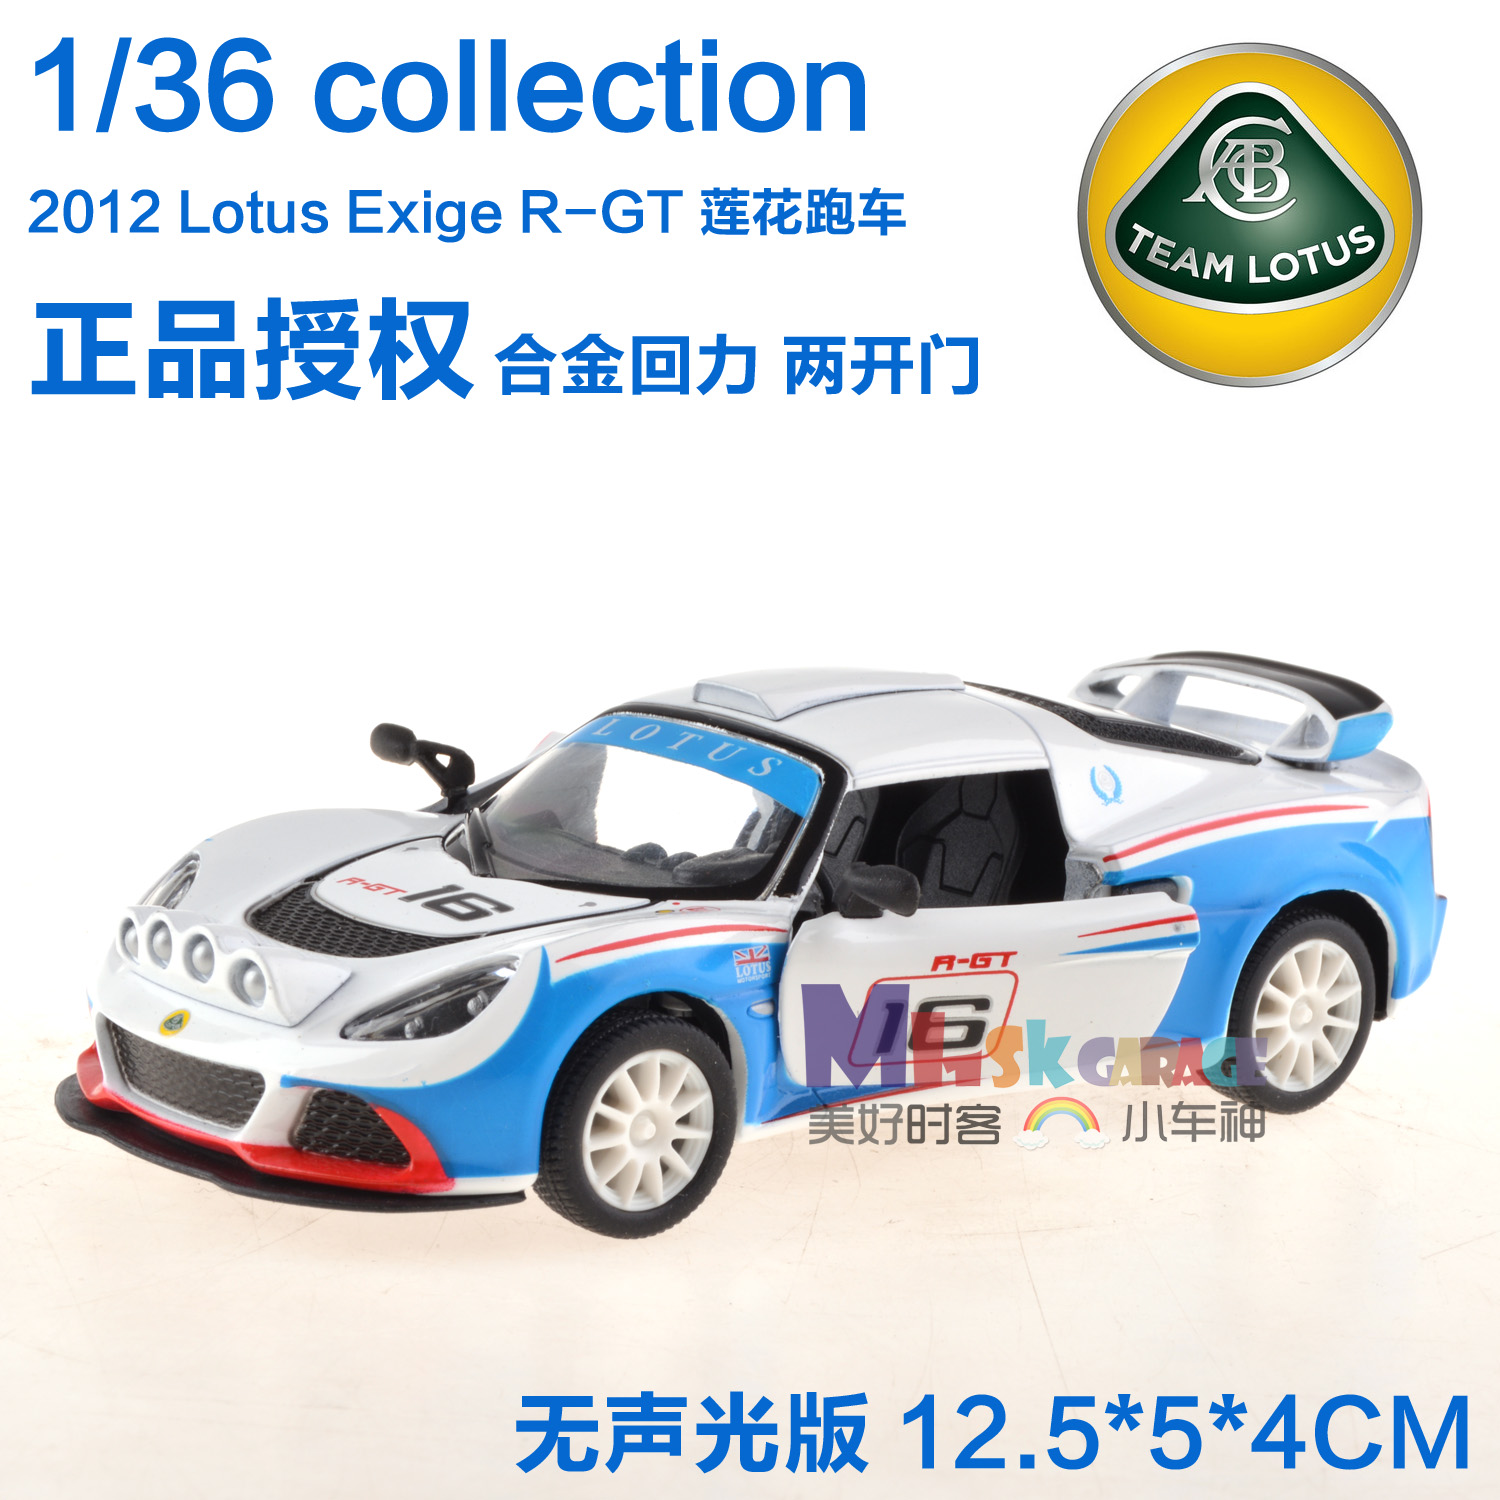 2015 Real Special Offer White Blue > 3 Years Old Subaru Hot Wheels Kt Lotus Soft World Super Car Model Alloy Warrior Toy Sports(China (Mainland))